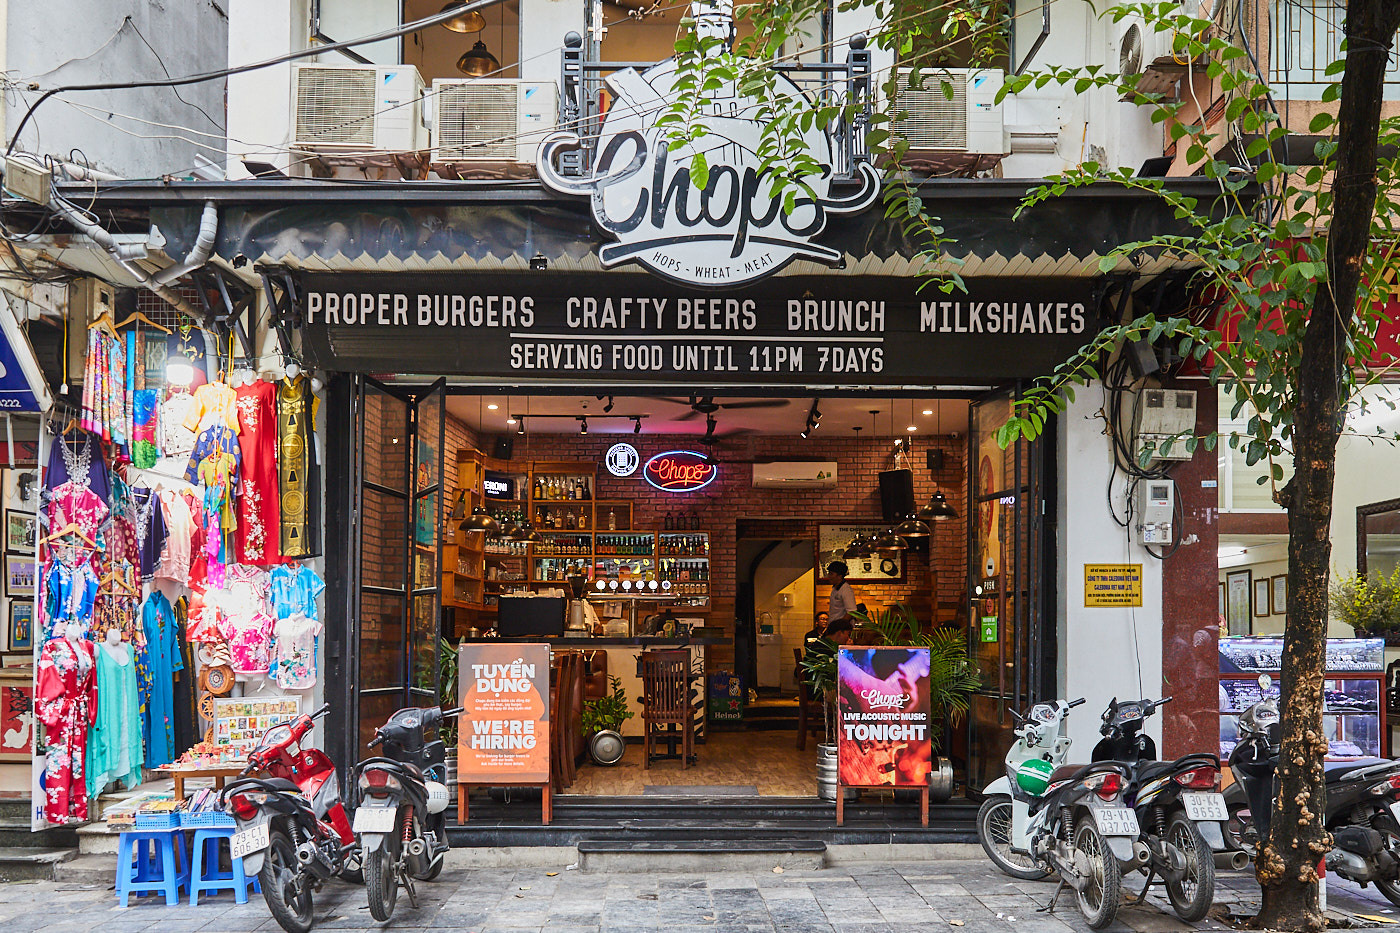 Craft beer and burgers at Chops, Hanoi